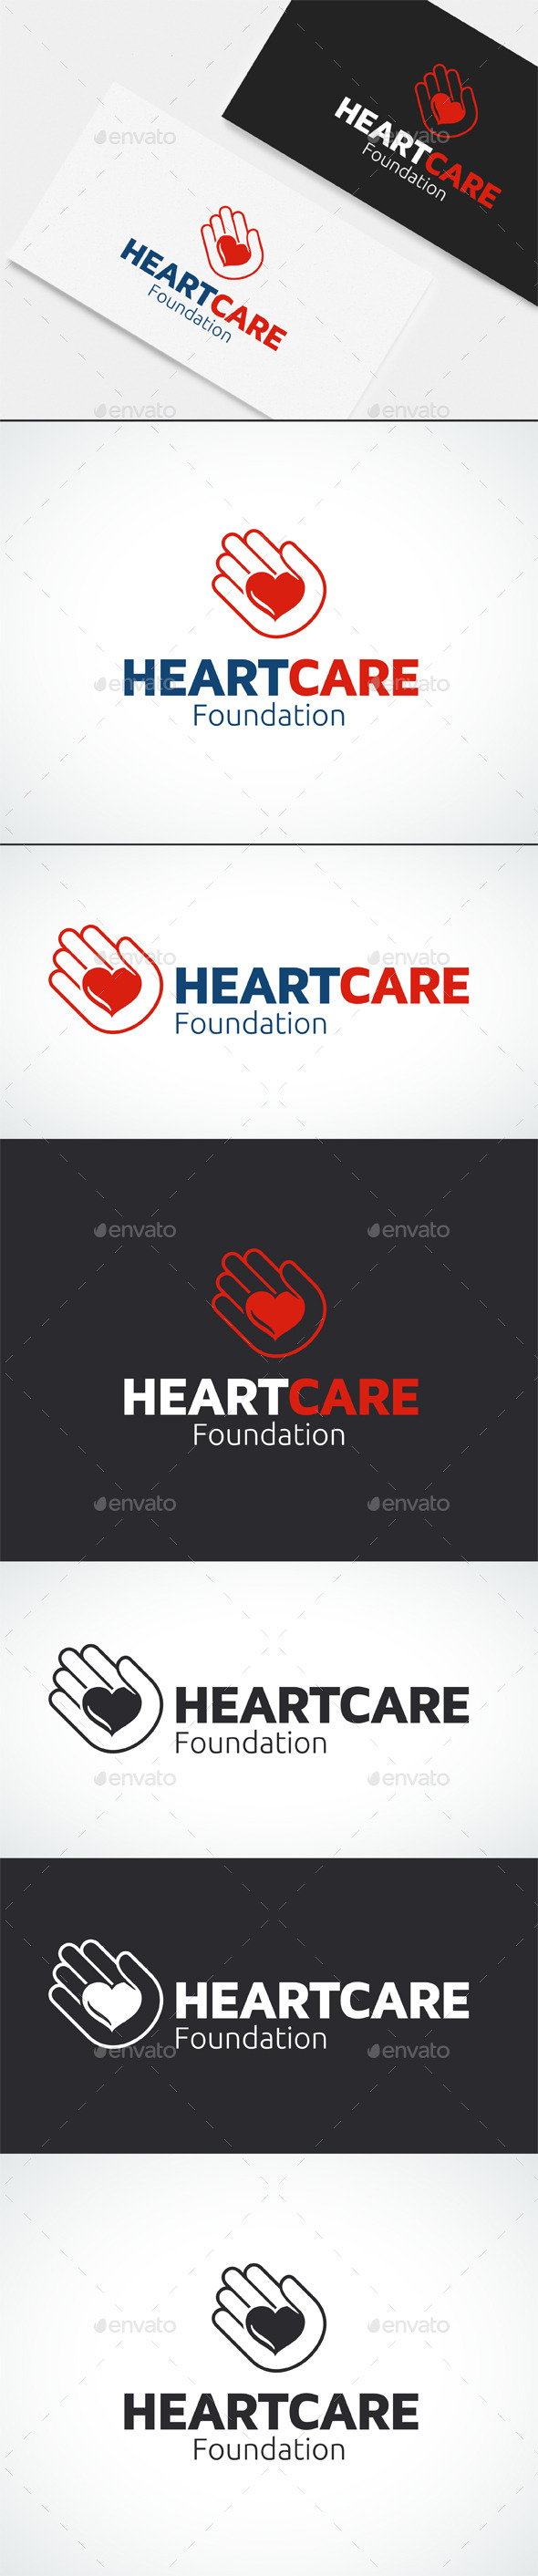 GraphicRiver Healthcare Charity Logo Template 10723298